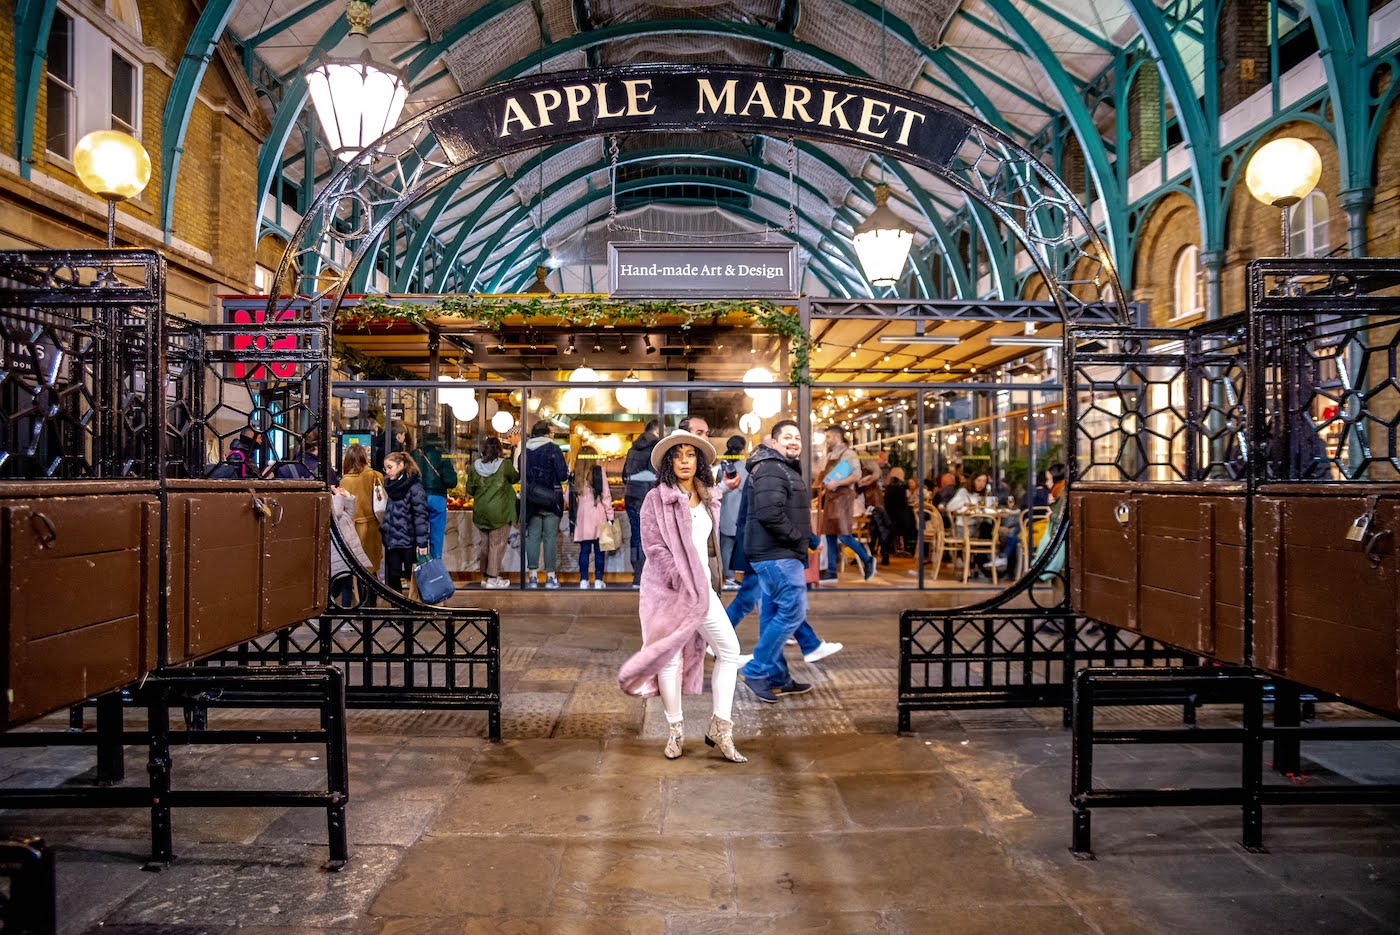 A weekend in London. Apple Market at Covent Gardens